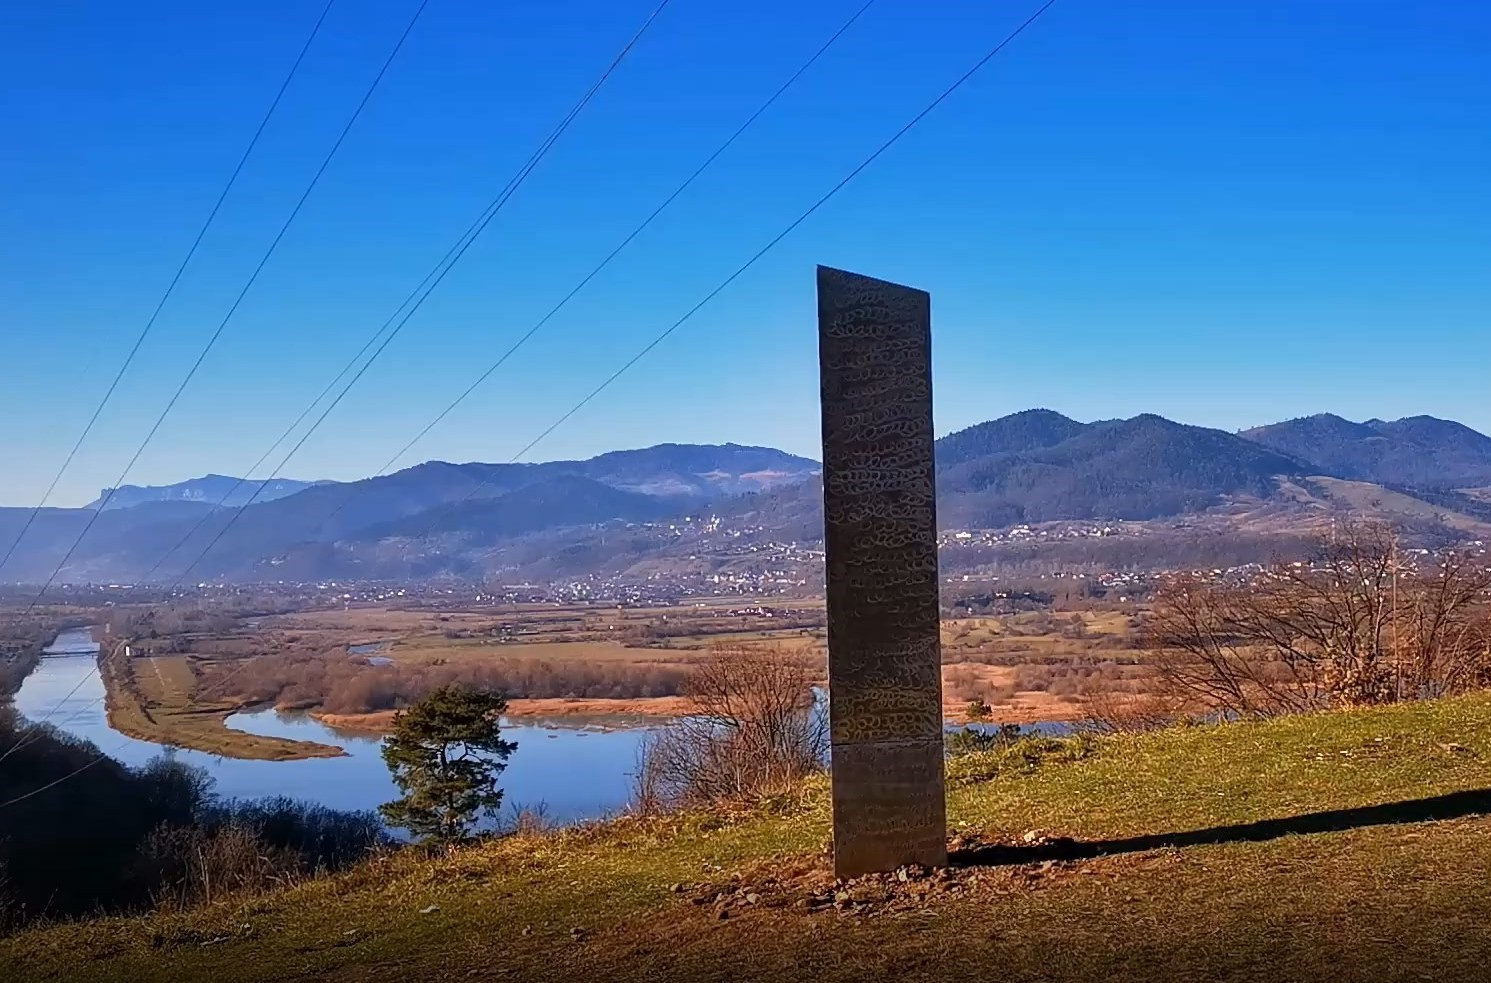 Aliens A Marketing Ploy Or An Artist Another Monolith Appears In Romania Dazed